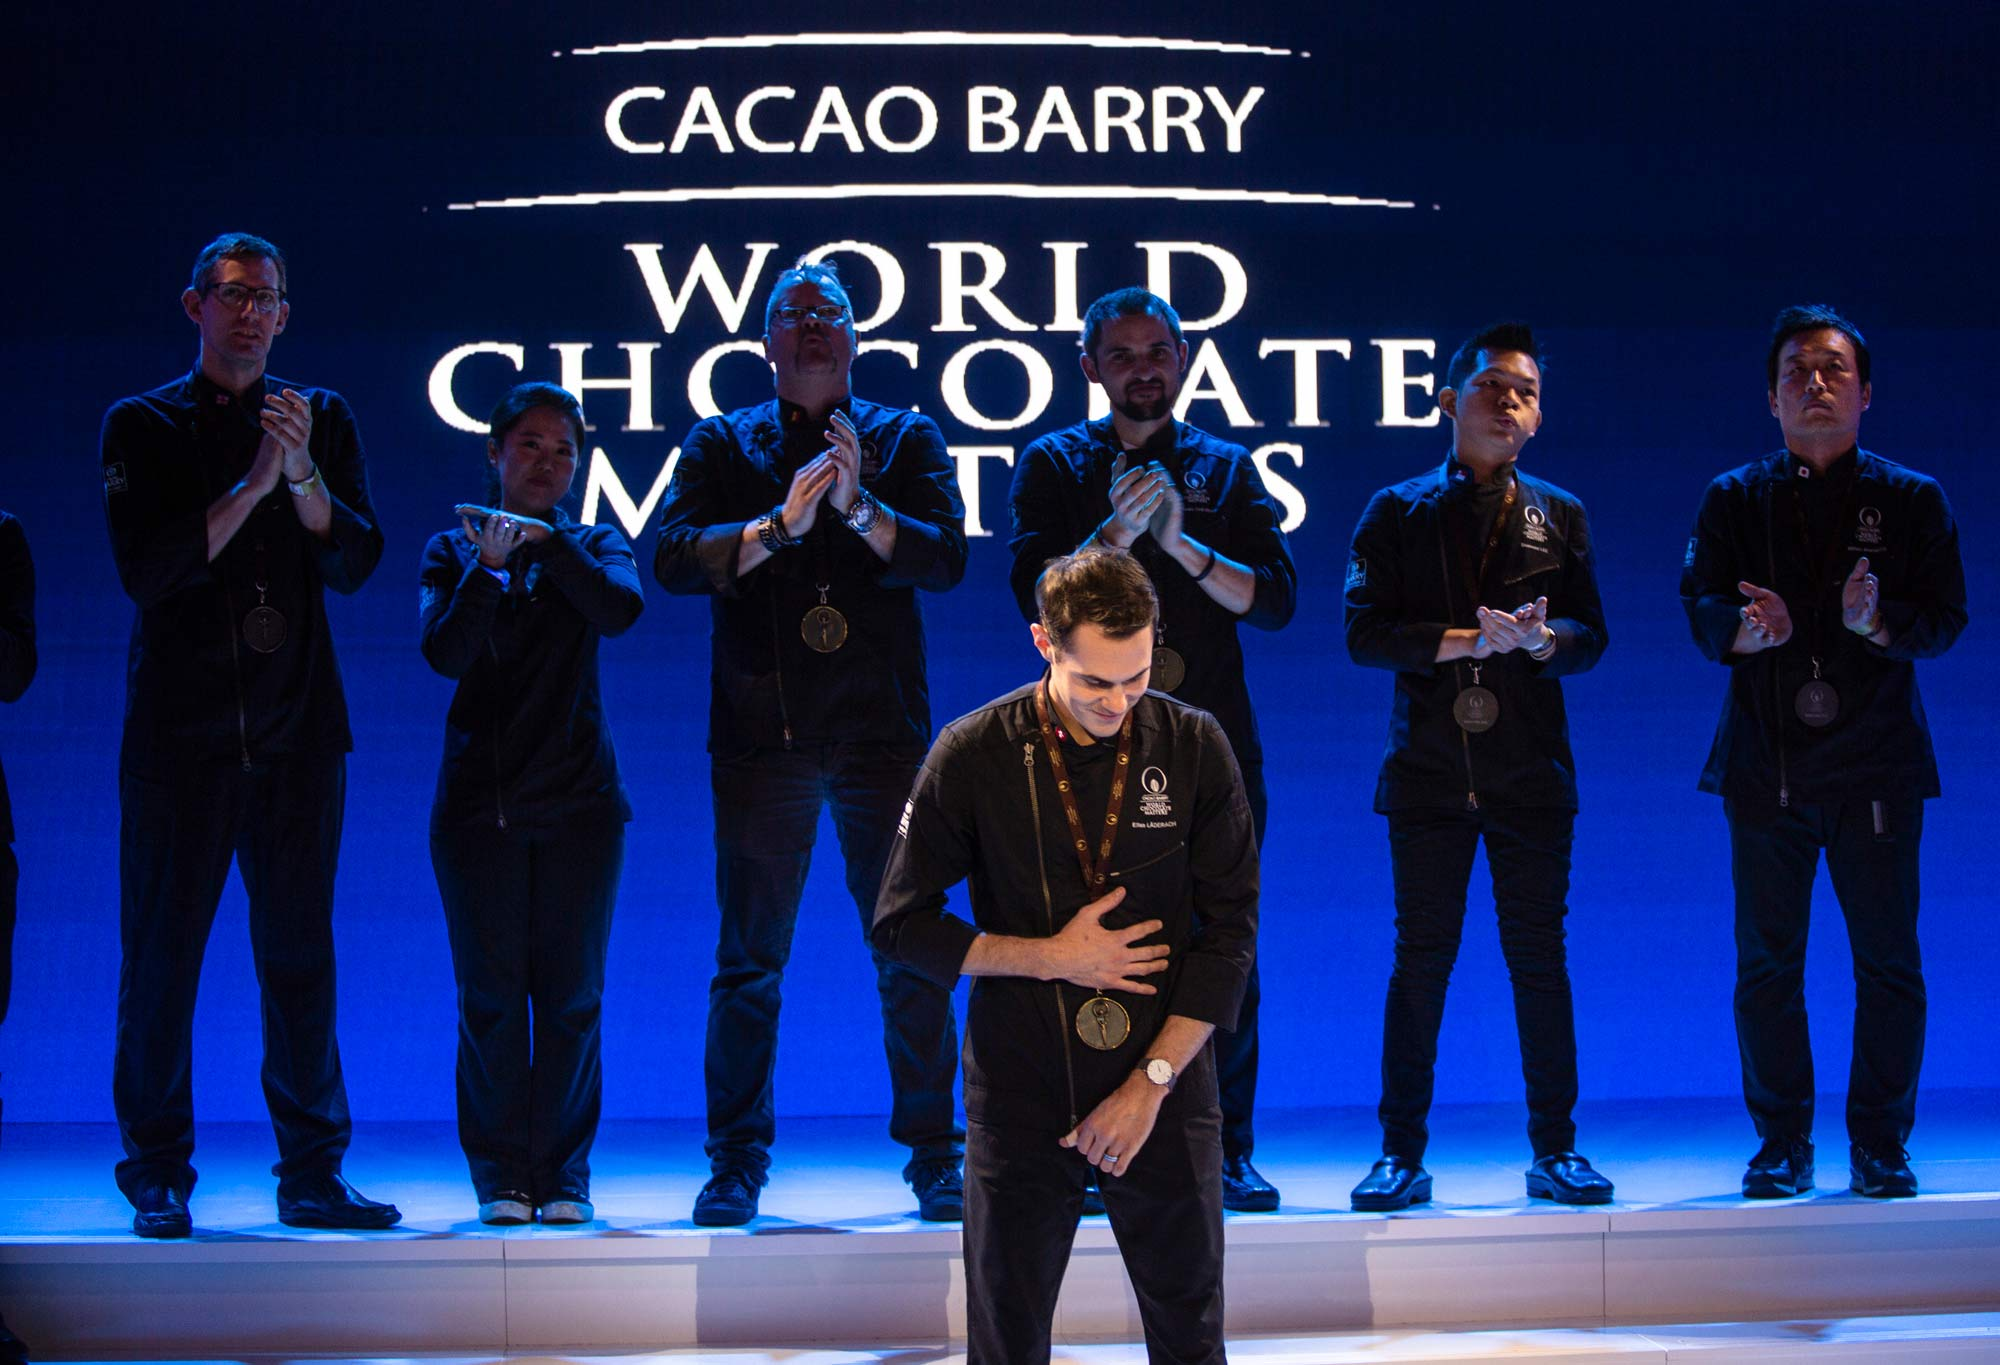 Elias Läderach from Switzerland, during the World Chocolate Masters 2018 prize giving a few minutes before knowing that he was going to be the new winner of the world final.